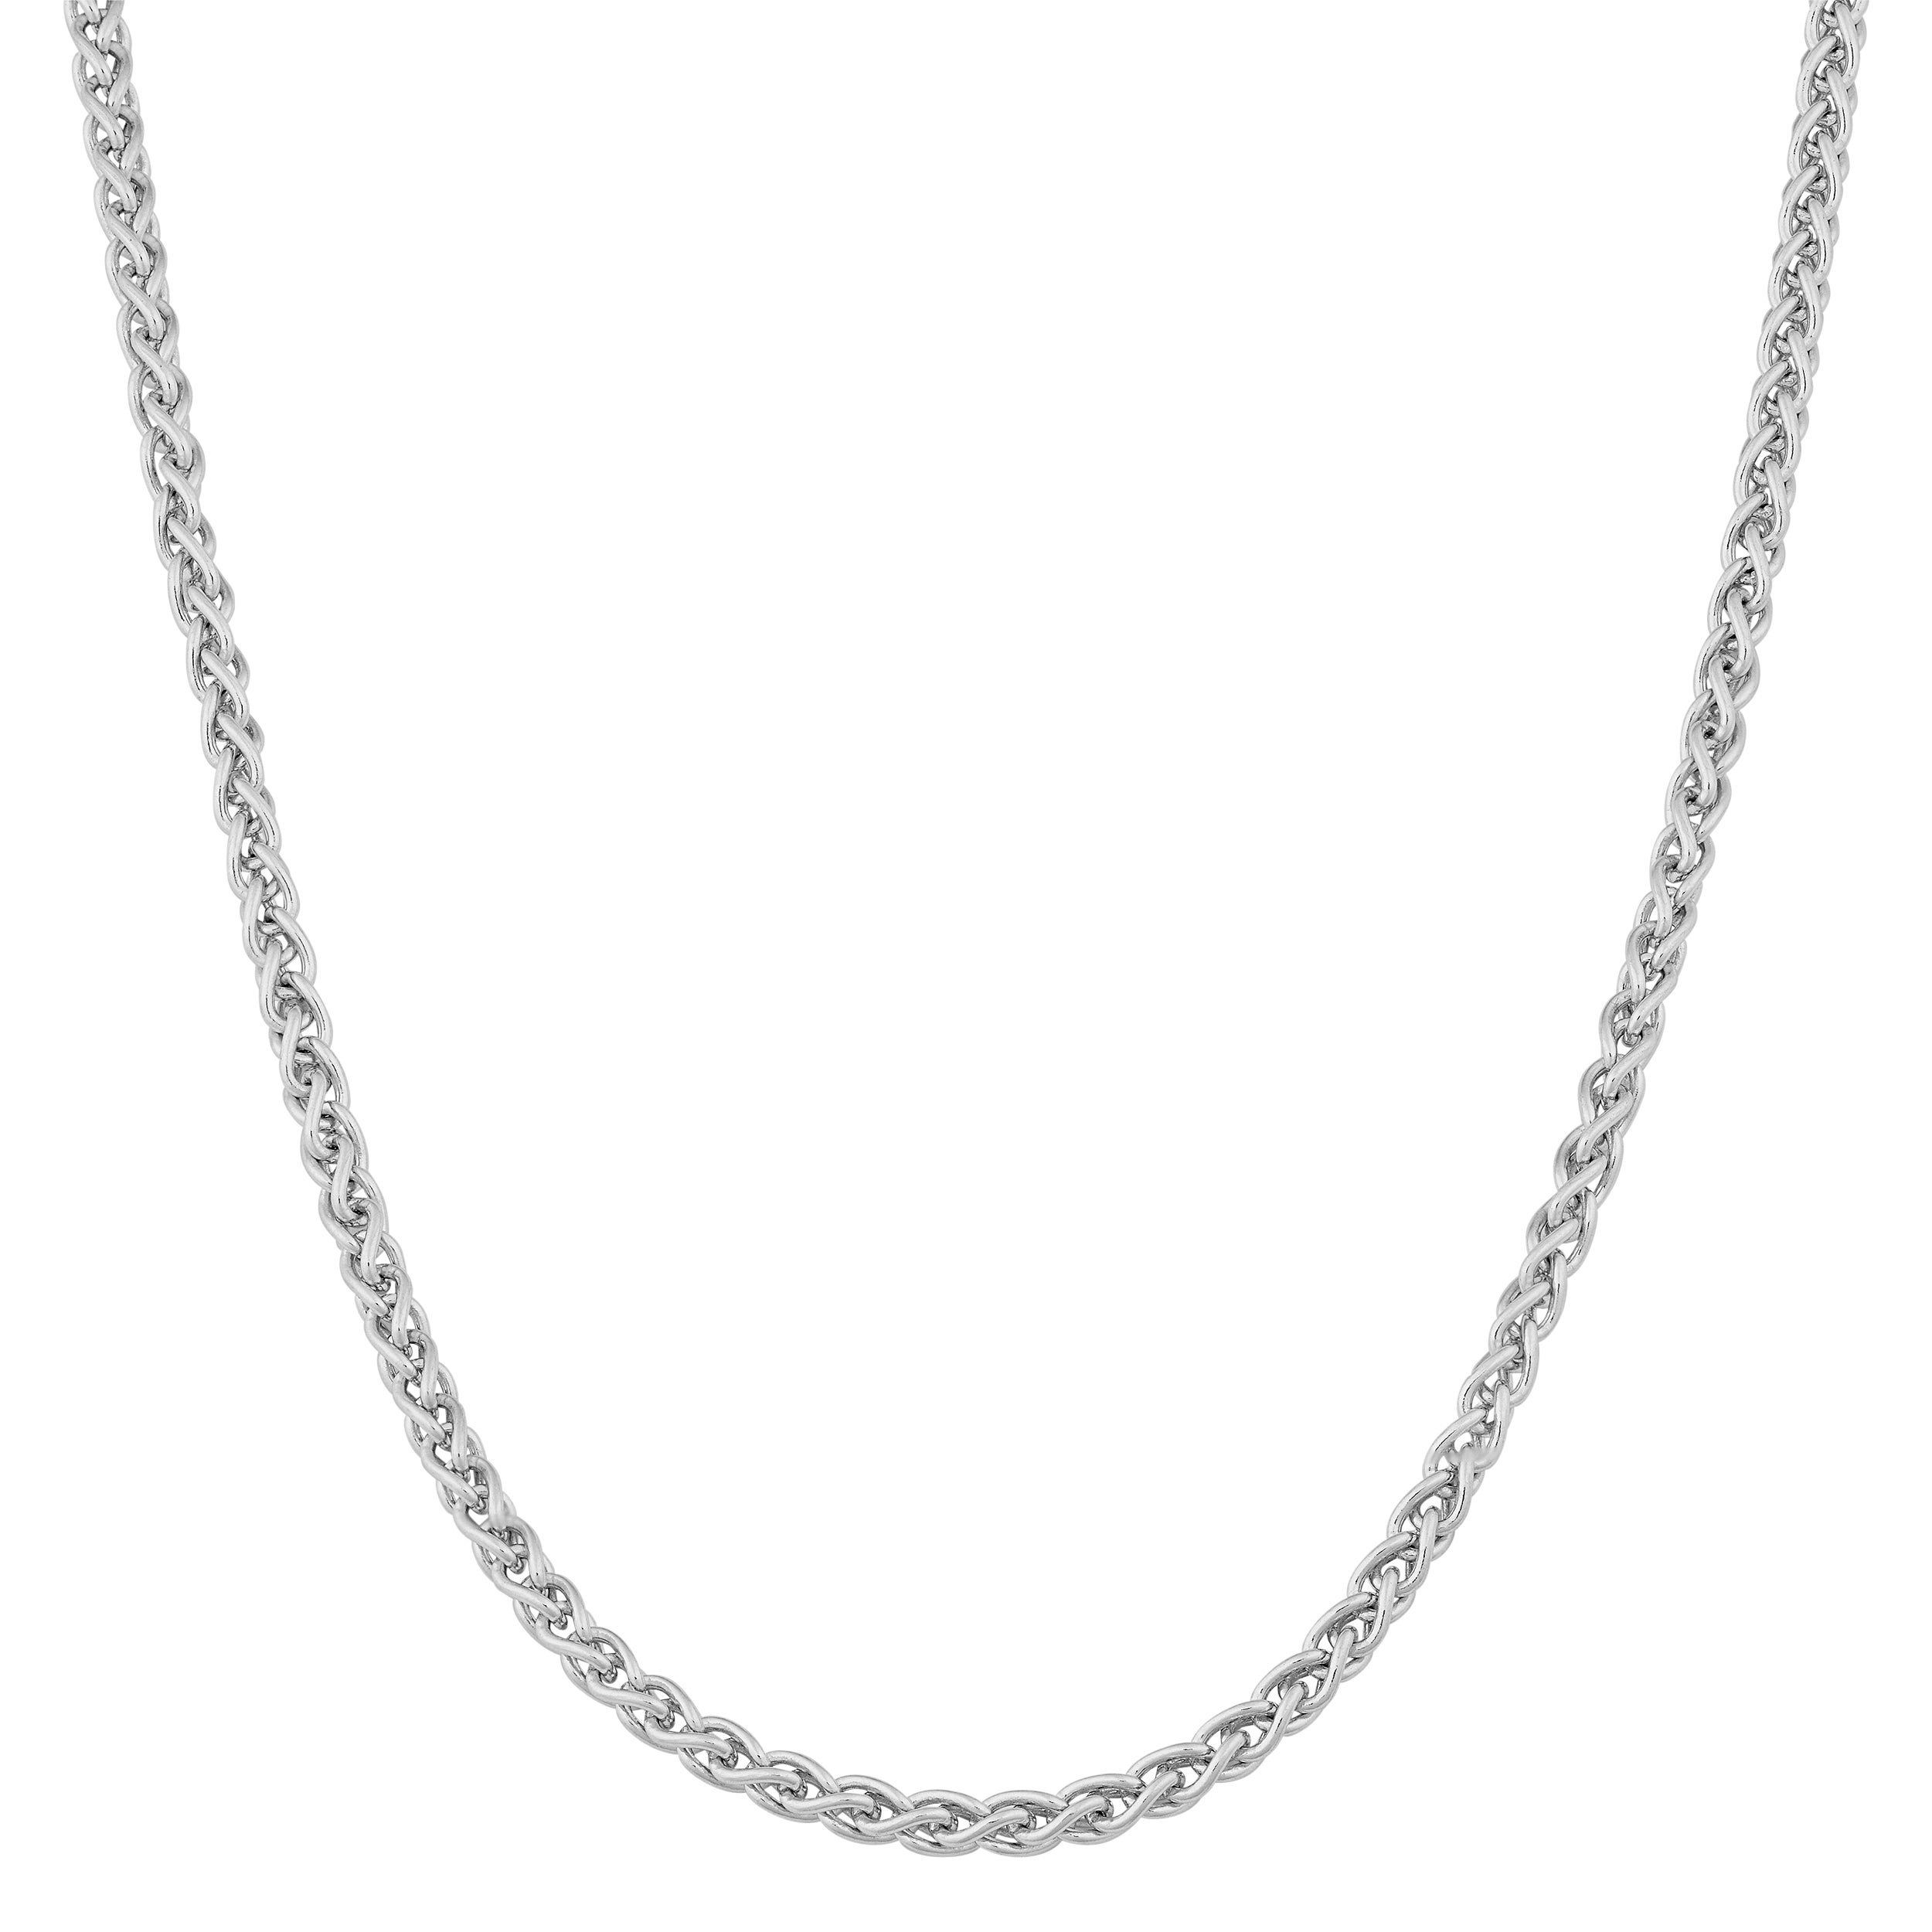 Sterling Silver With Rhodium Finish Necklace With Lobster Clasp 18 Inch